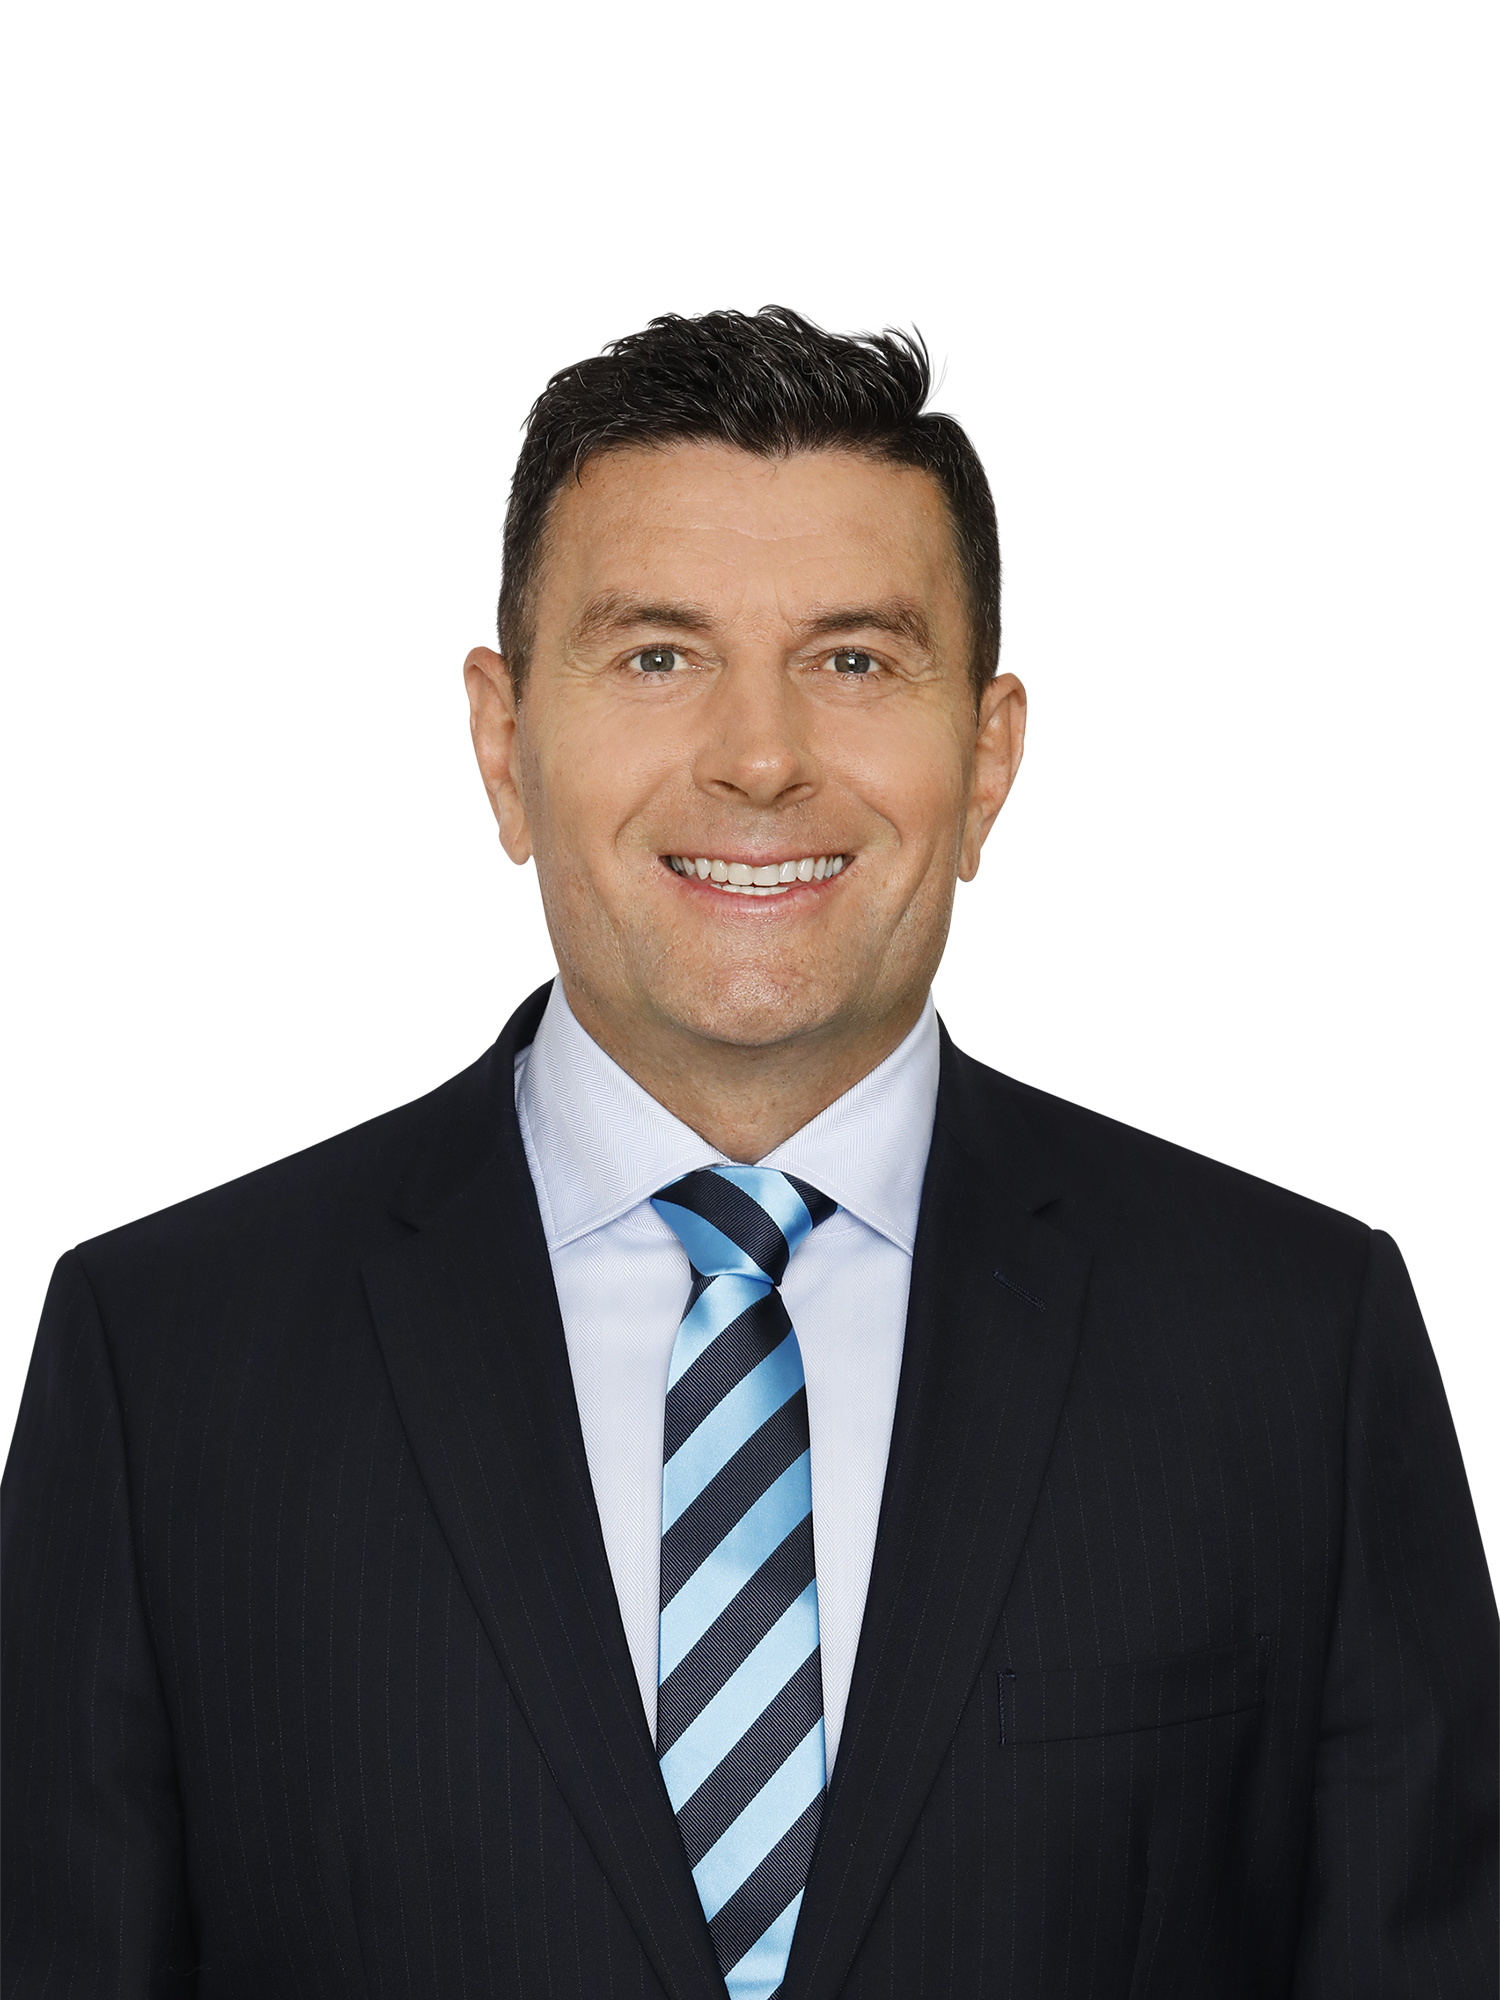 Former News Presenter Joins Harcourts in Brisbane